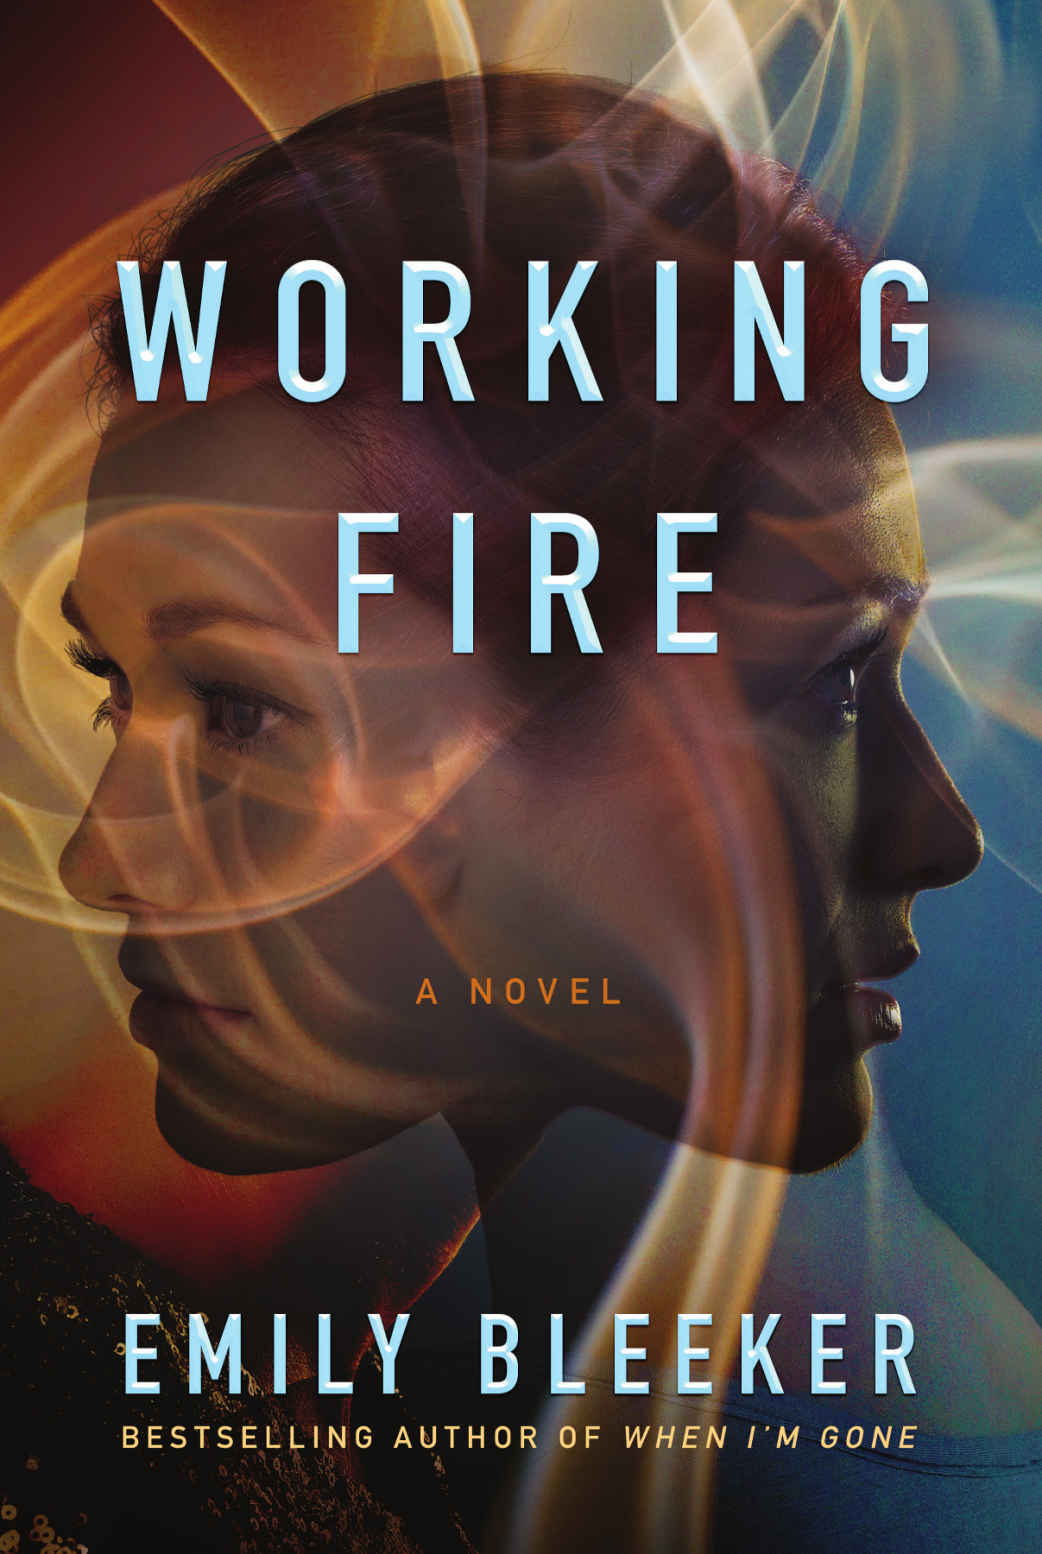 Working Fire: A Novel - Emily Bleeker [kindle] [mobi]